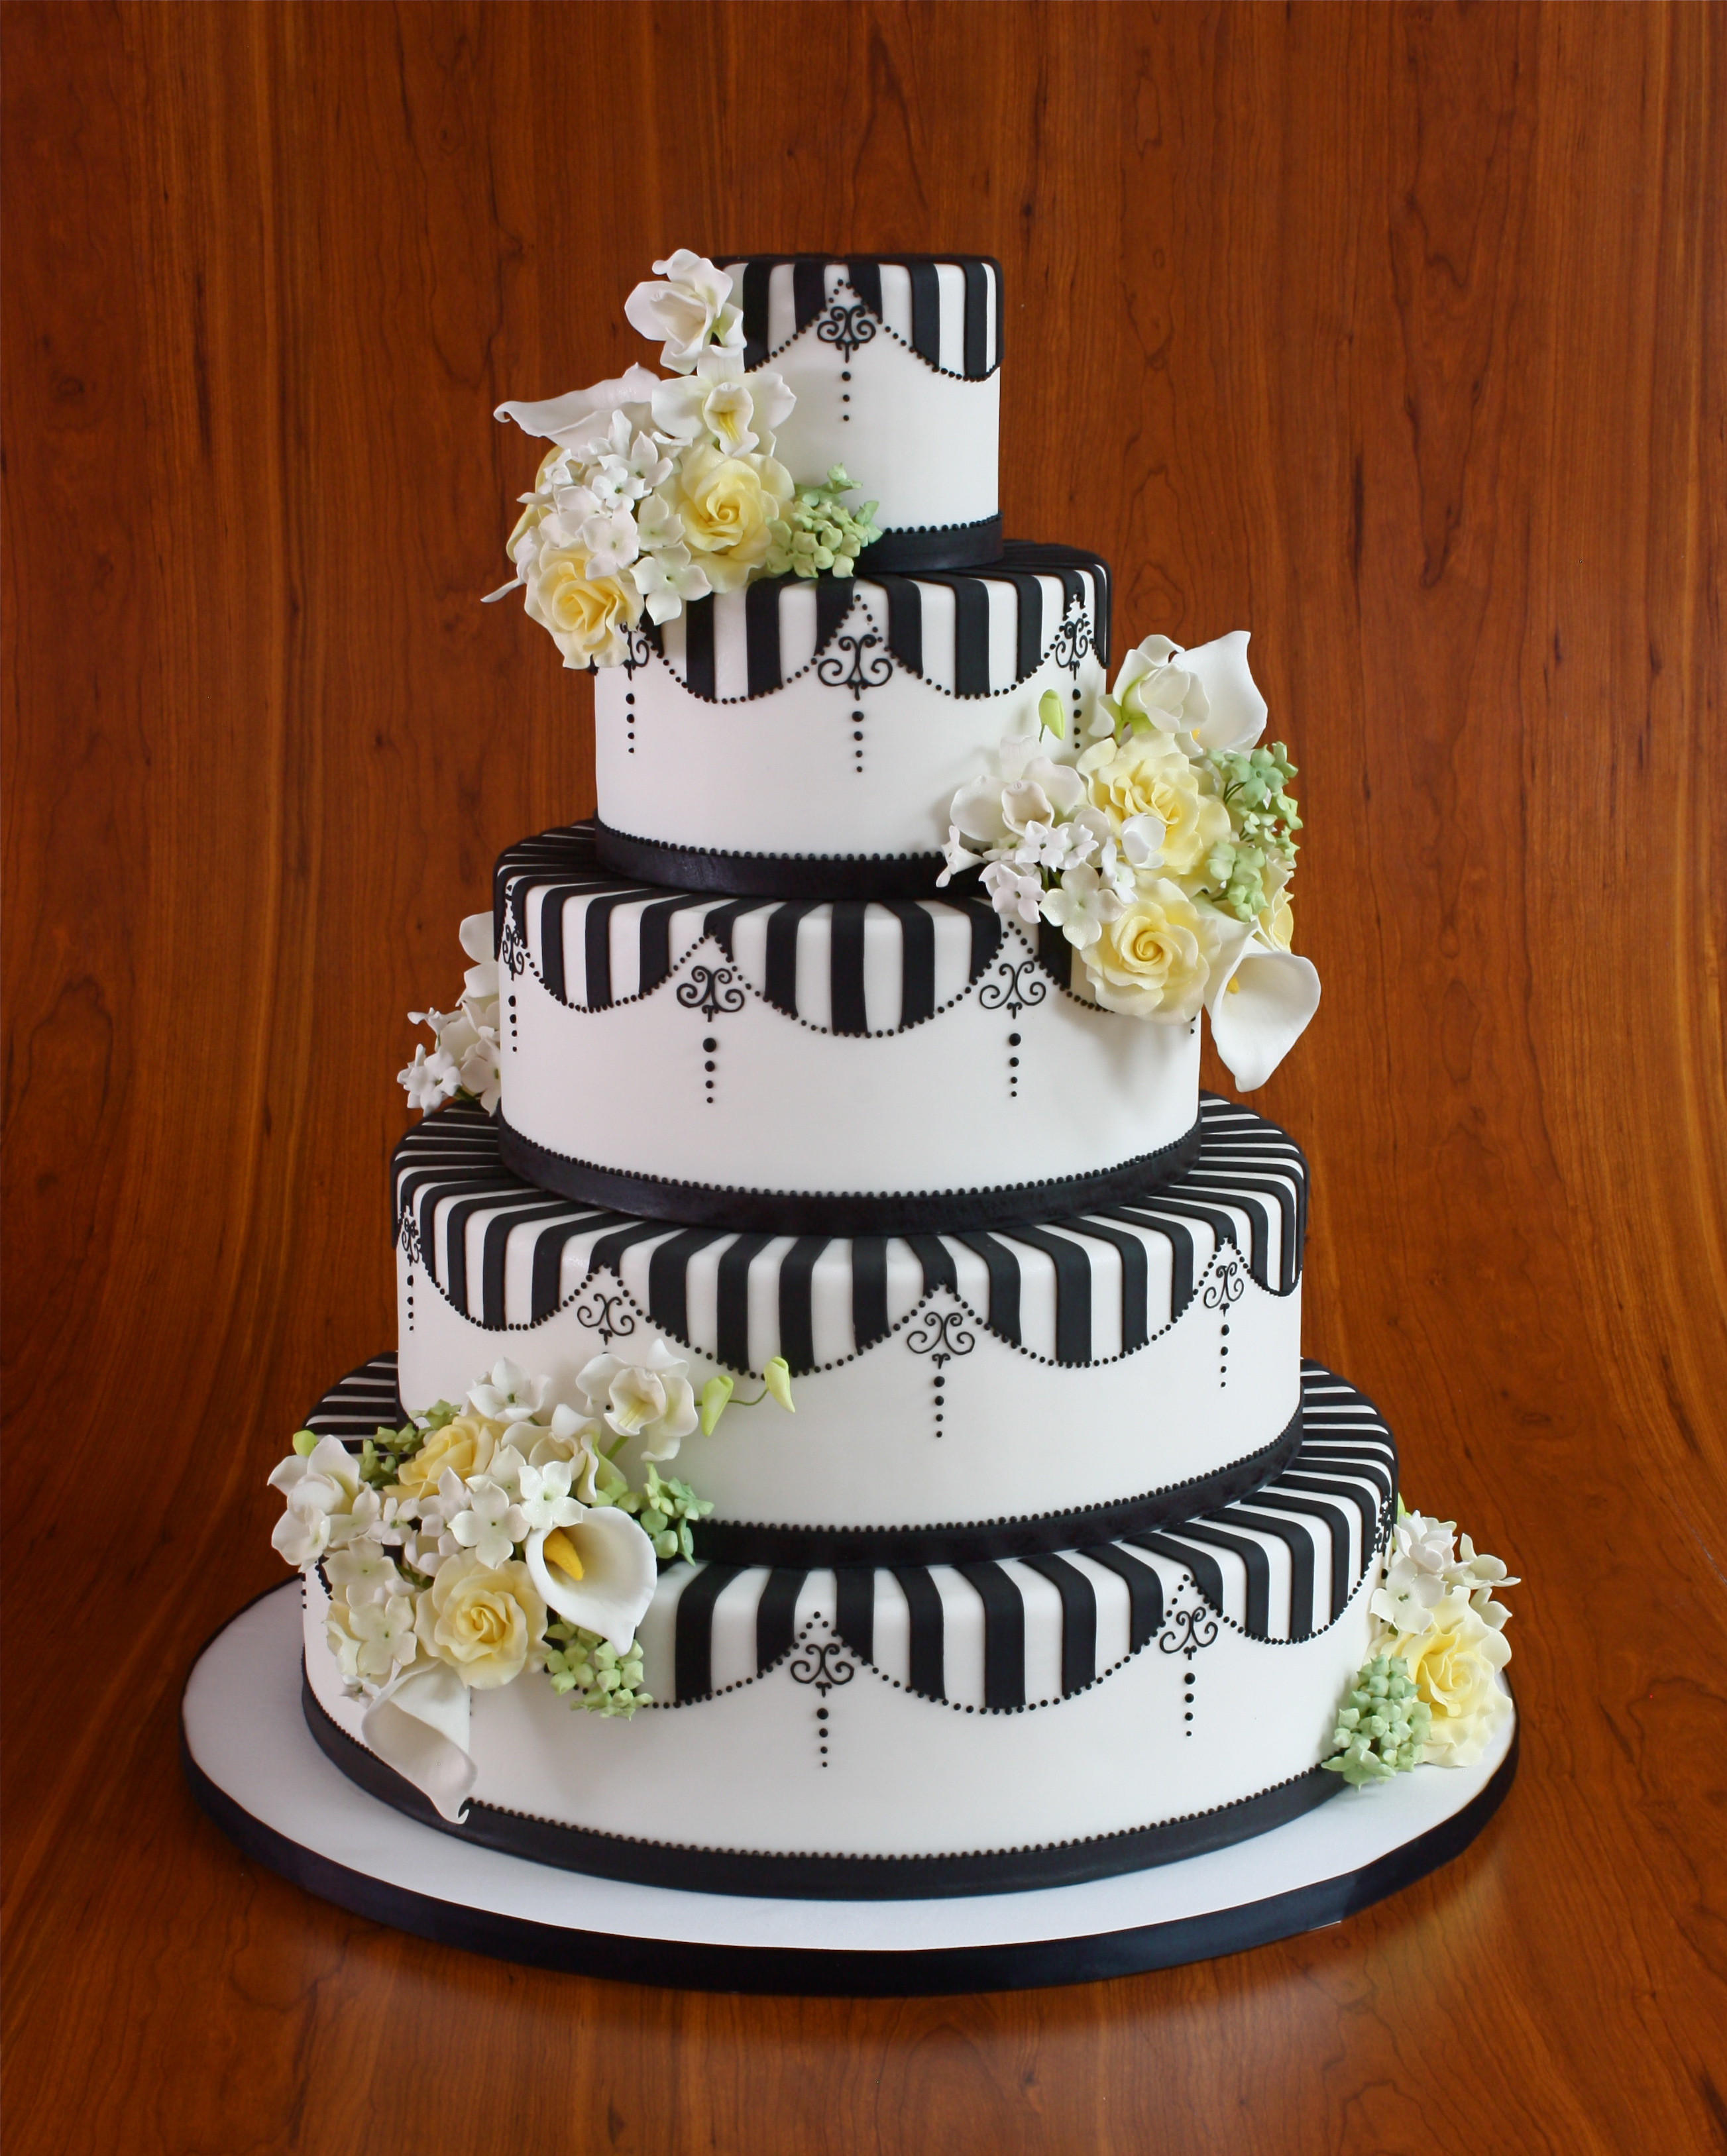 Wedding Cakes Brooklyn  The Cake of Your Dreams Elegantly Iced Brooklyn Based